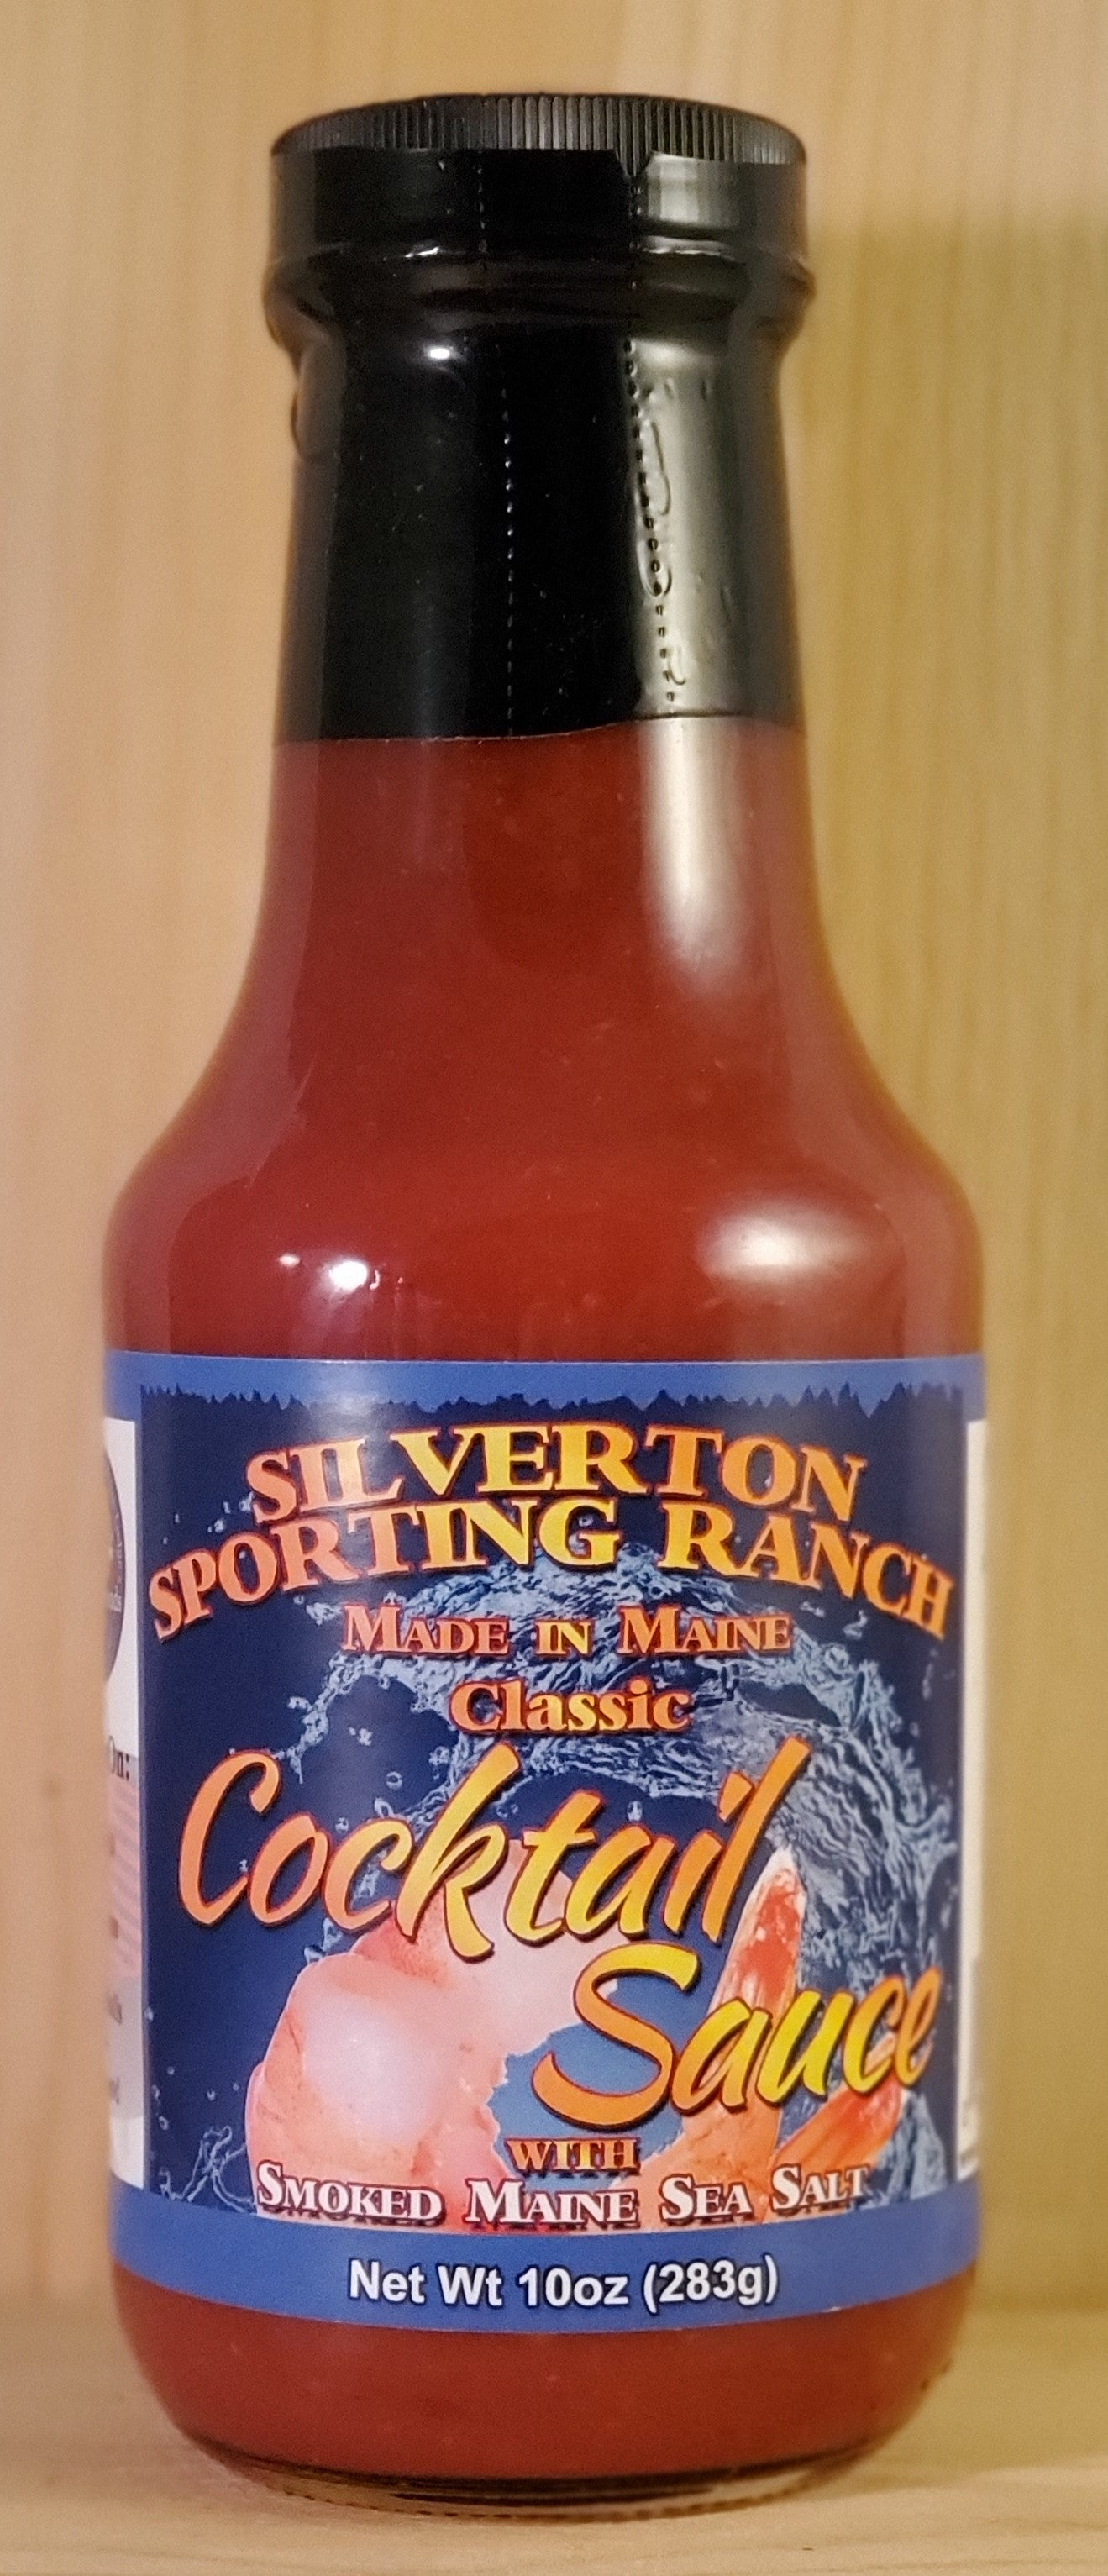 Classic Cocktail Sauce with Smoked Maine Sea Salt - Silverton Foods Best BBQ Sauces